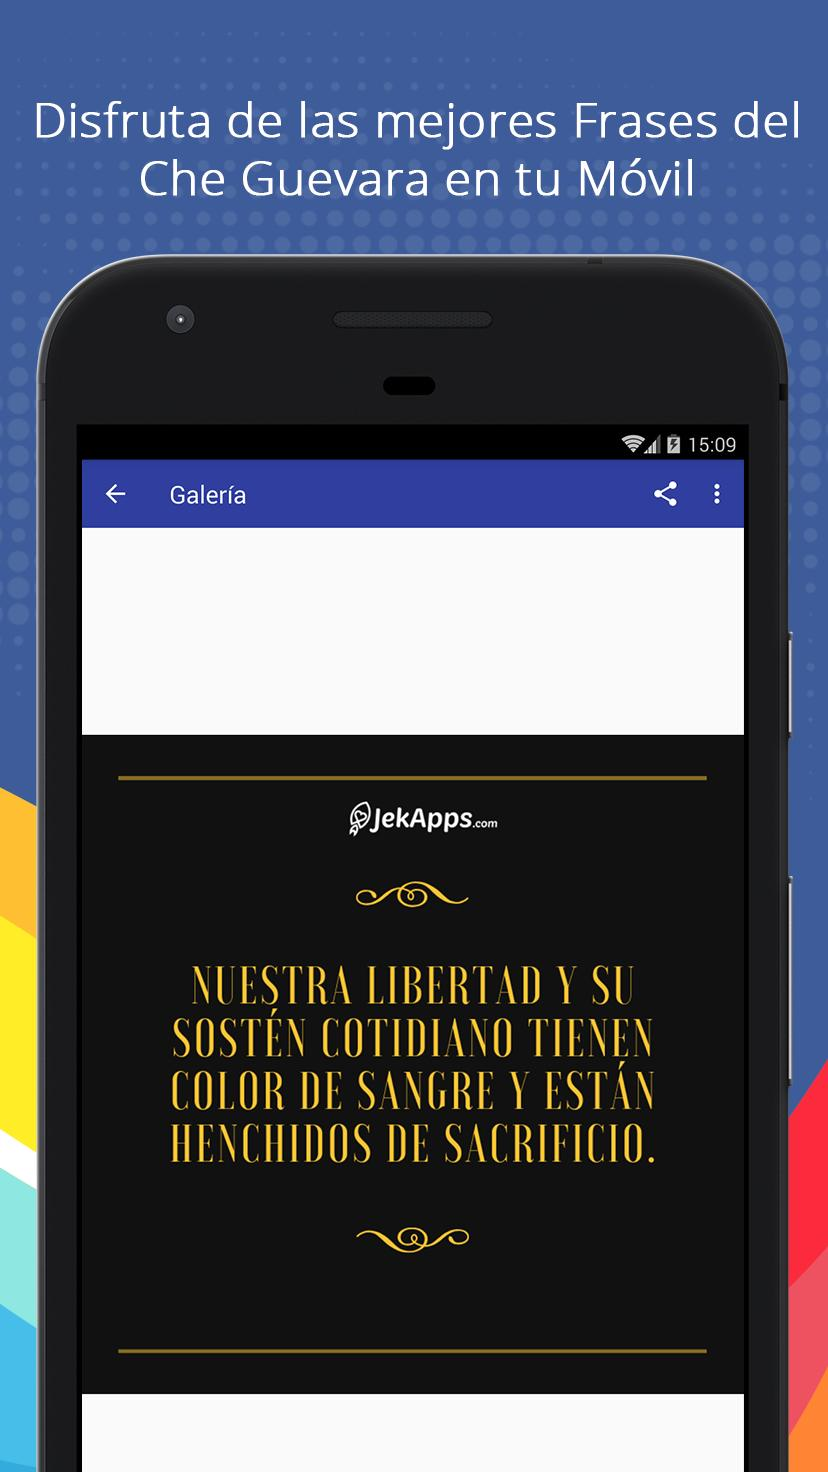 Frases Del Che Guevara For Android Apk Download